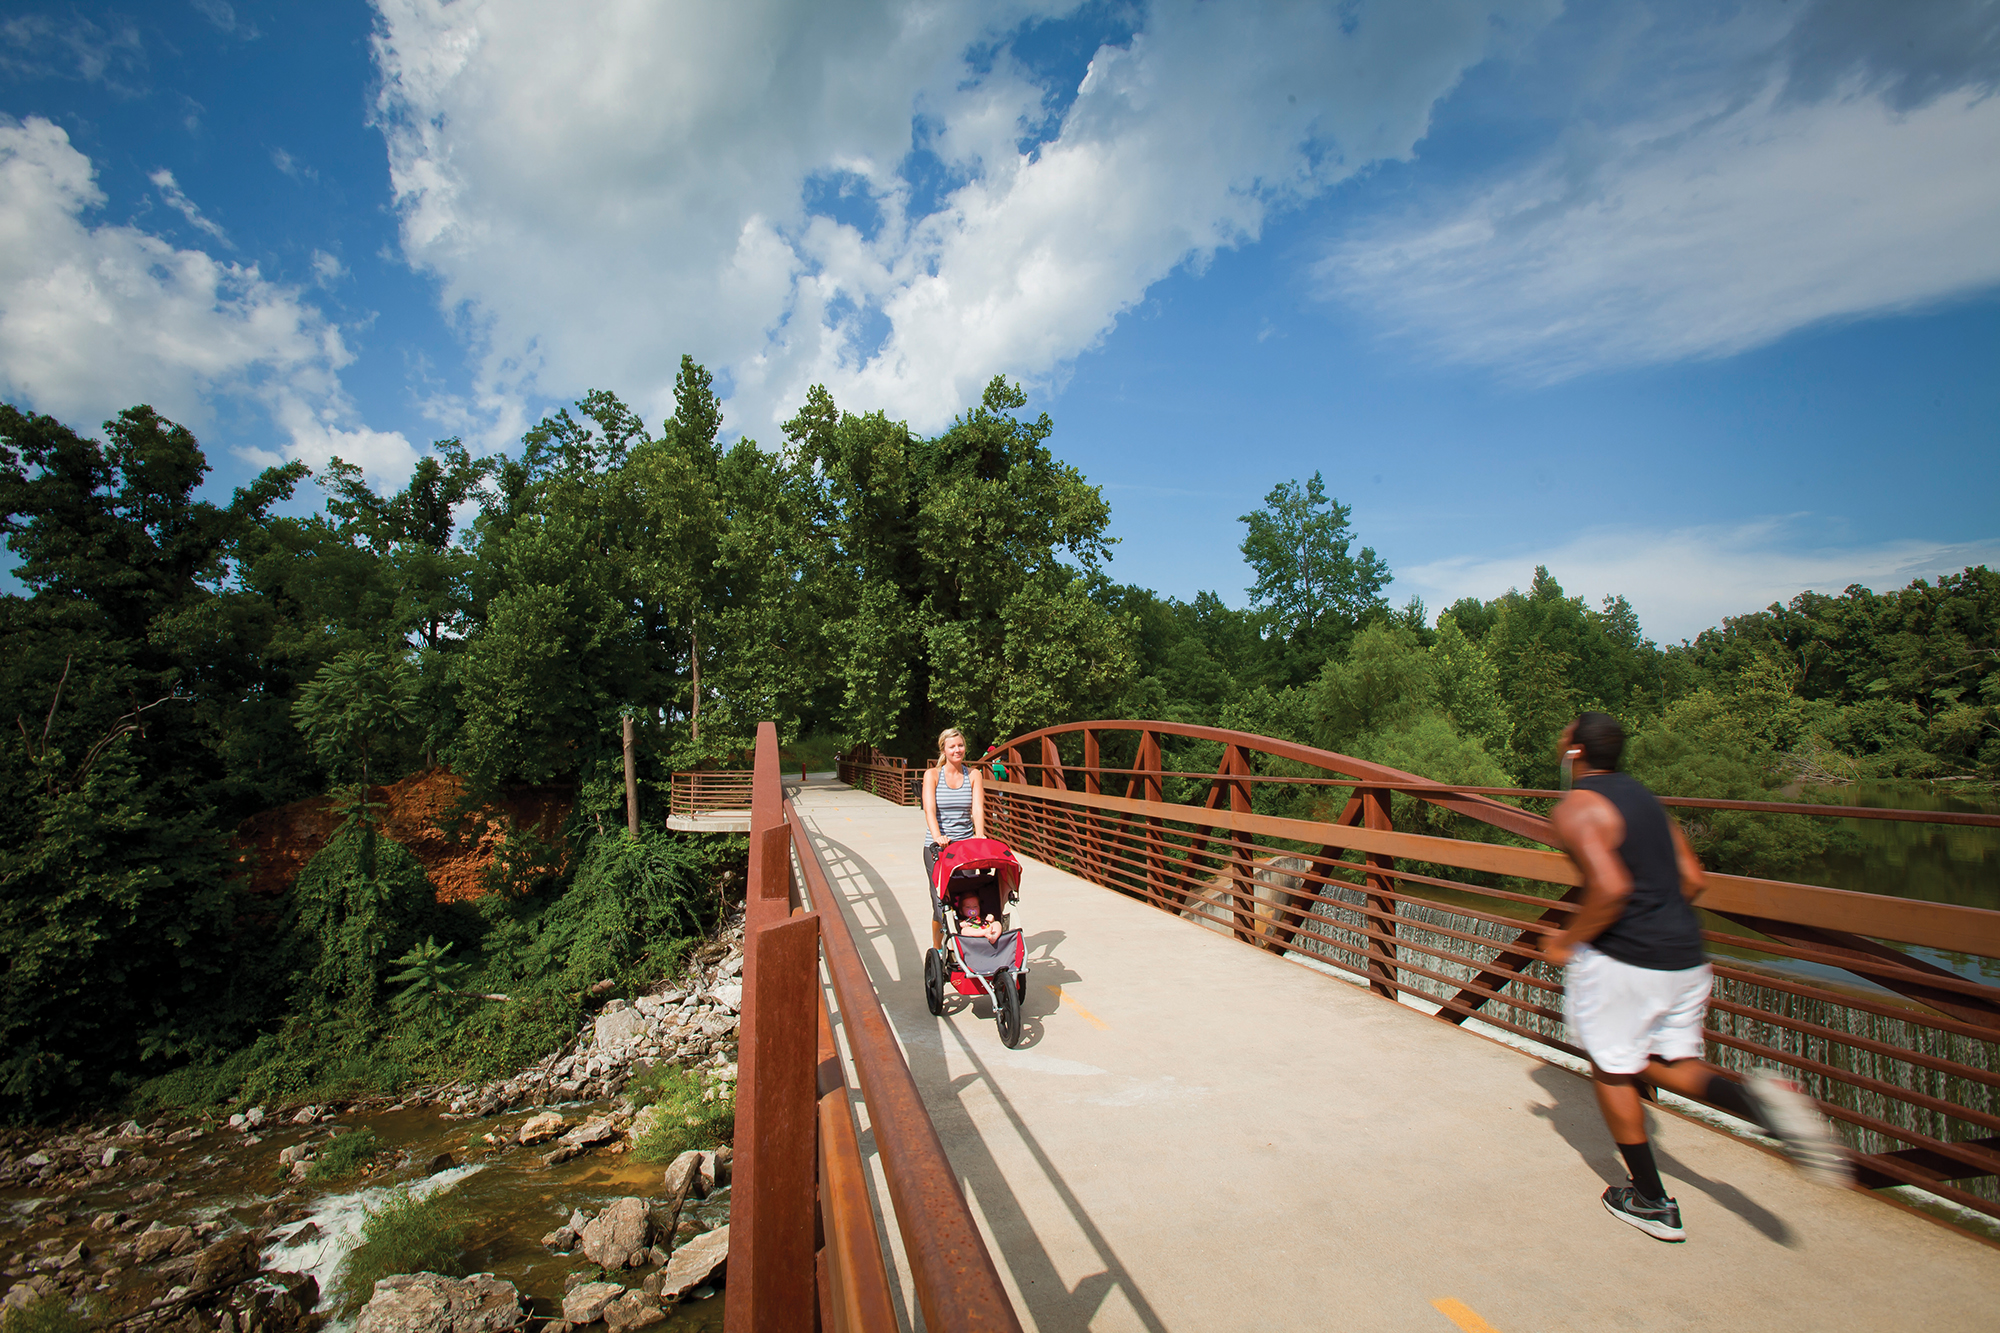 Lake Fayetteville Spillway Bridge, part of the 5.5 mile Lake Fayetteville loop and the larger 36-mile Razorback Regional Greenway.